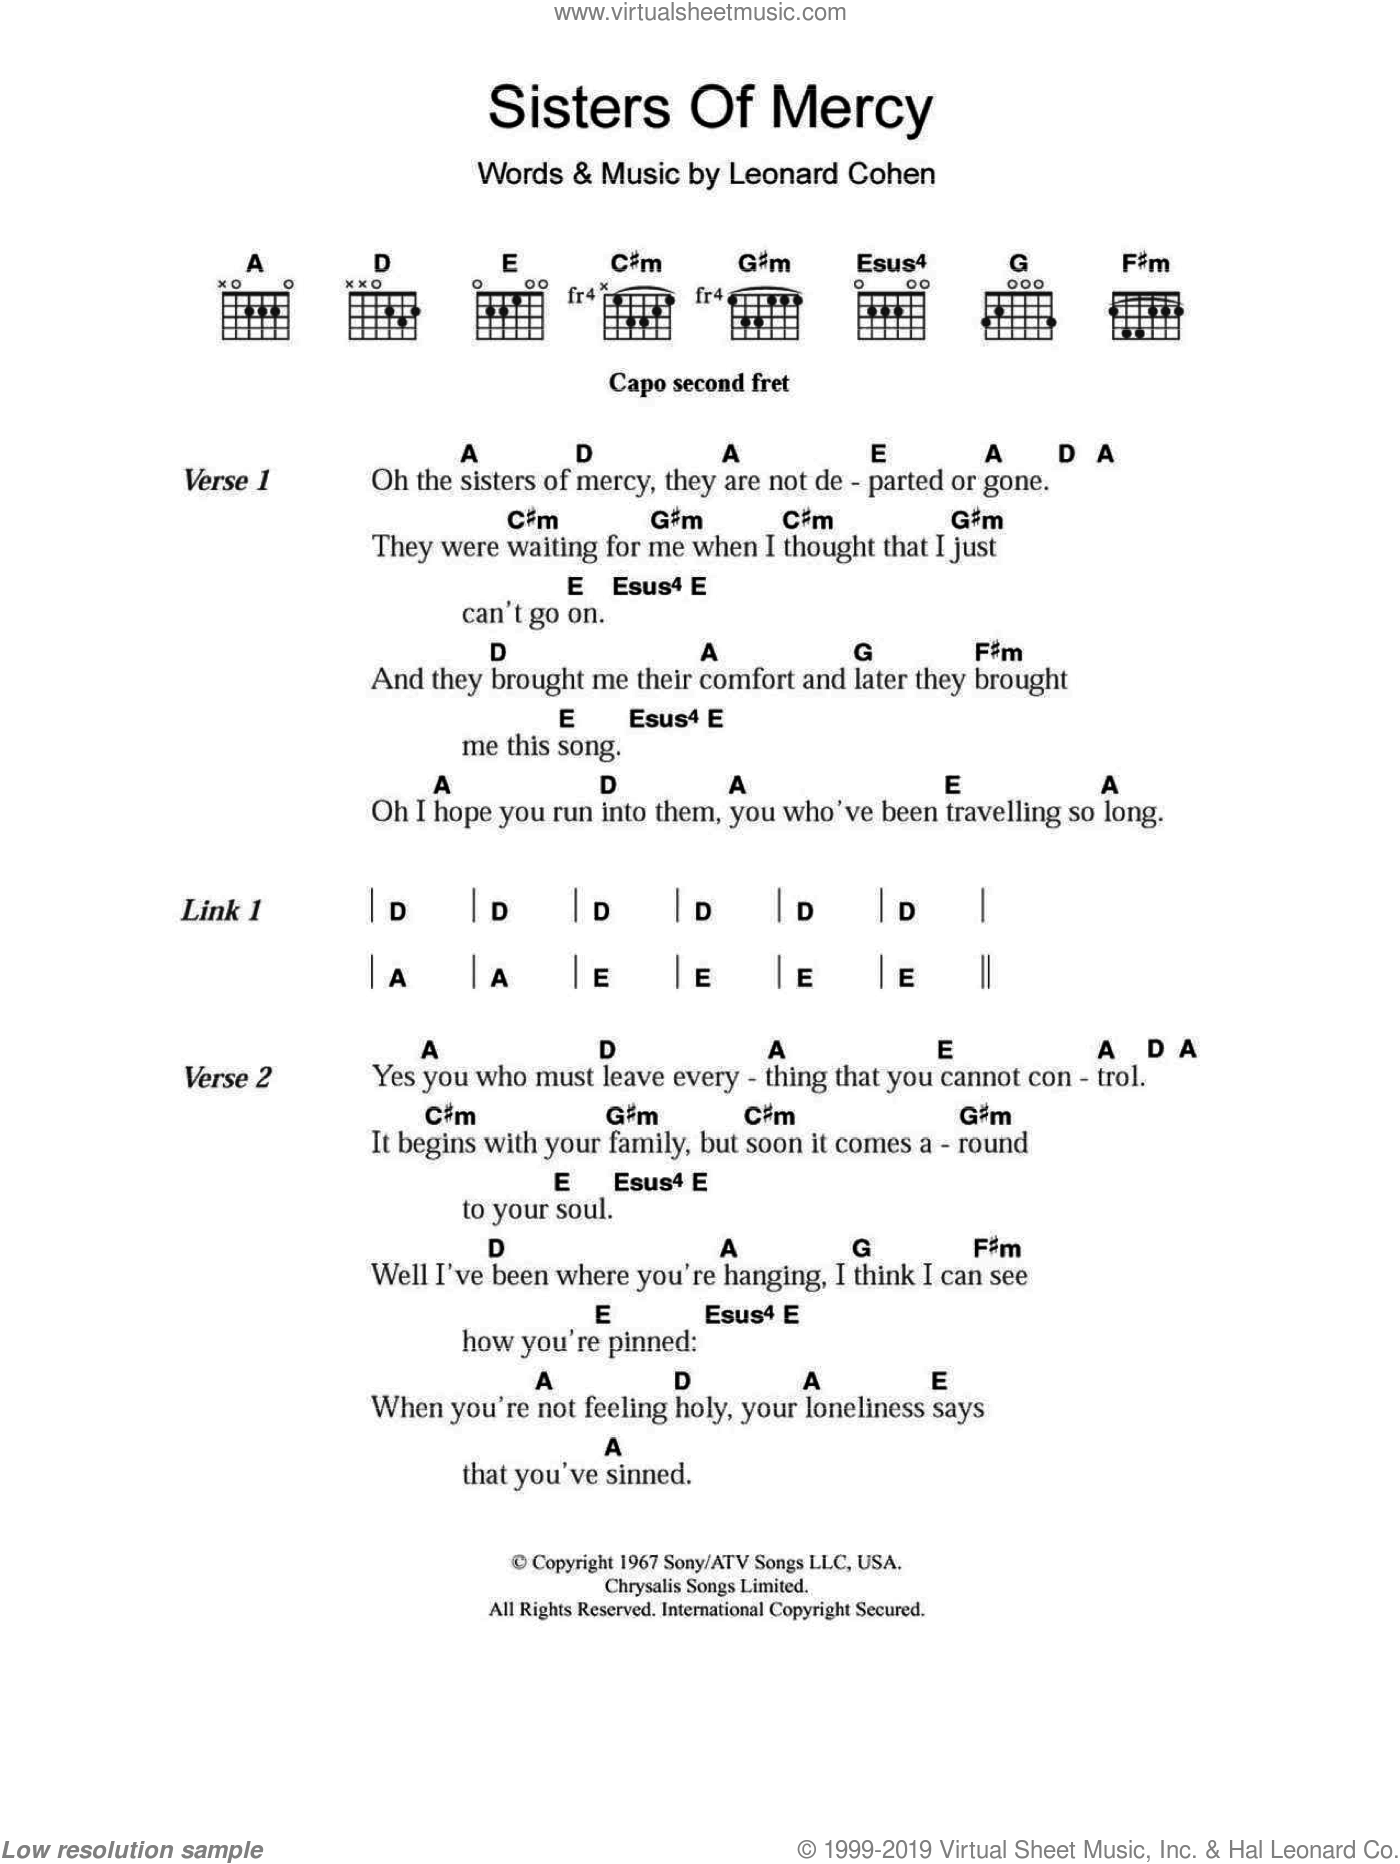 Sisters Of Mercy sheet music for guitar (chords) by Leonard Cohen, intermediate